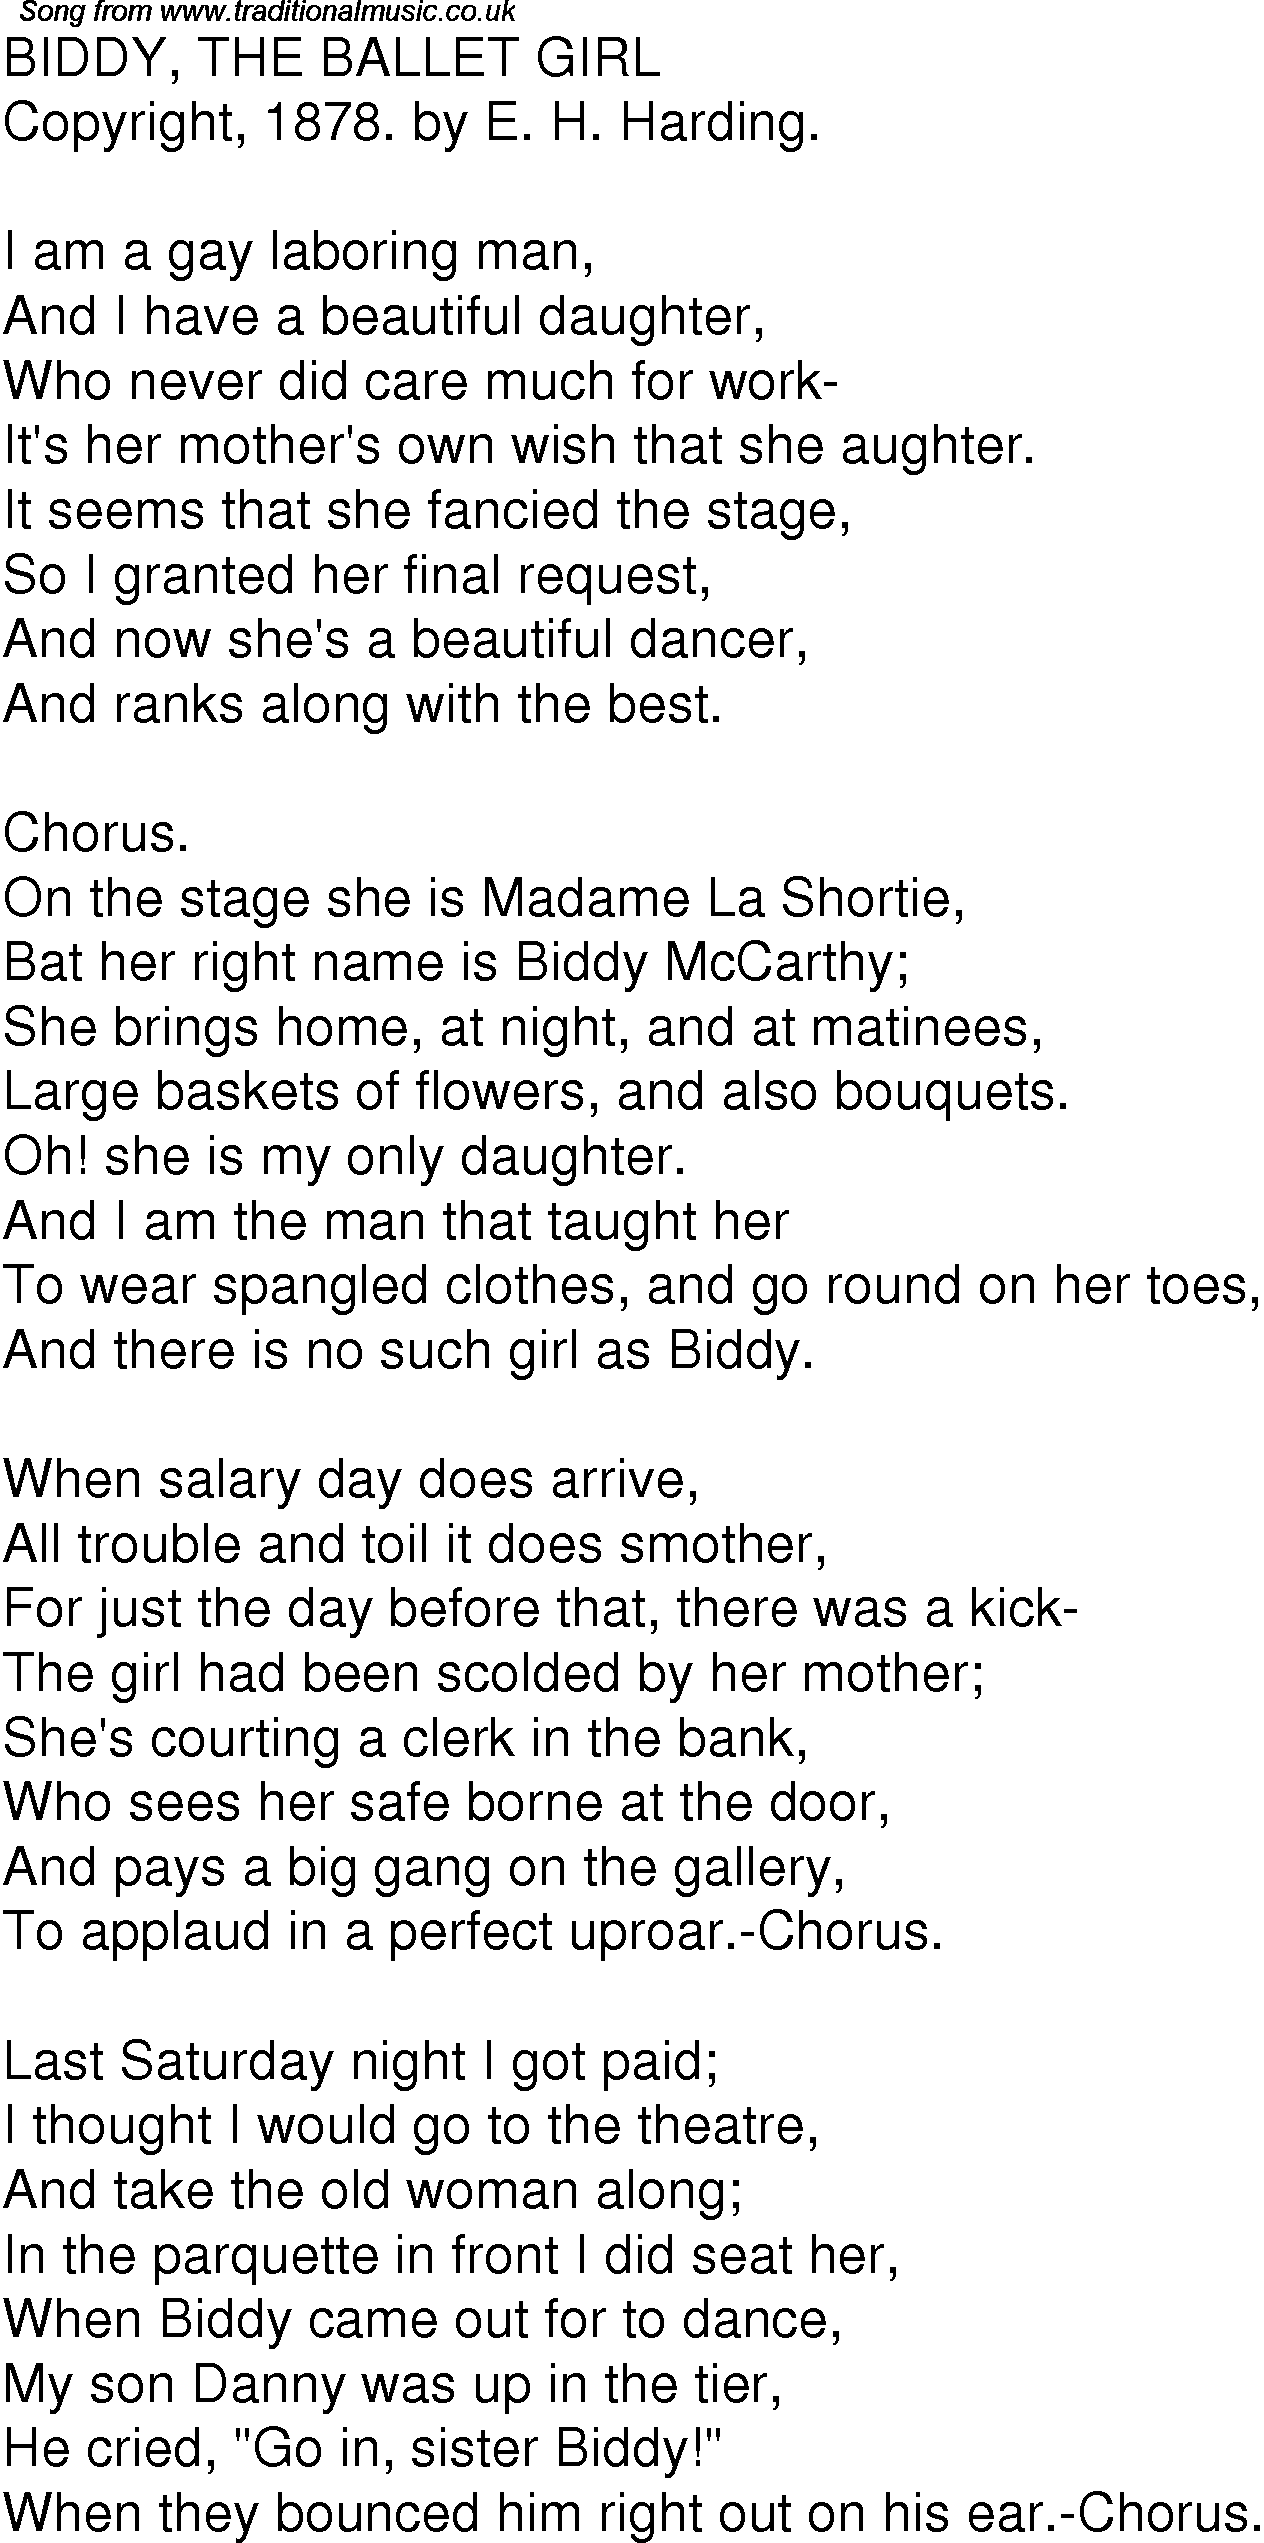 Old Time Song Lyrics for 01 Biddy The Ballet Girl